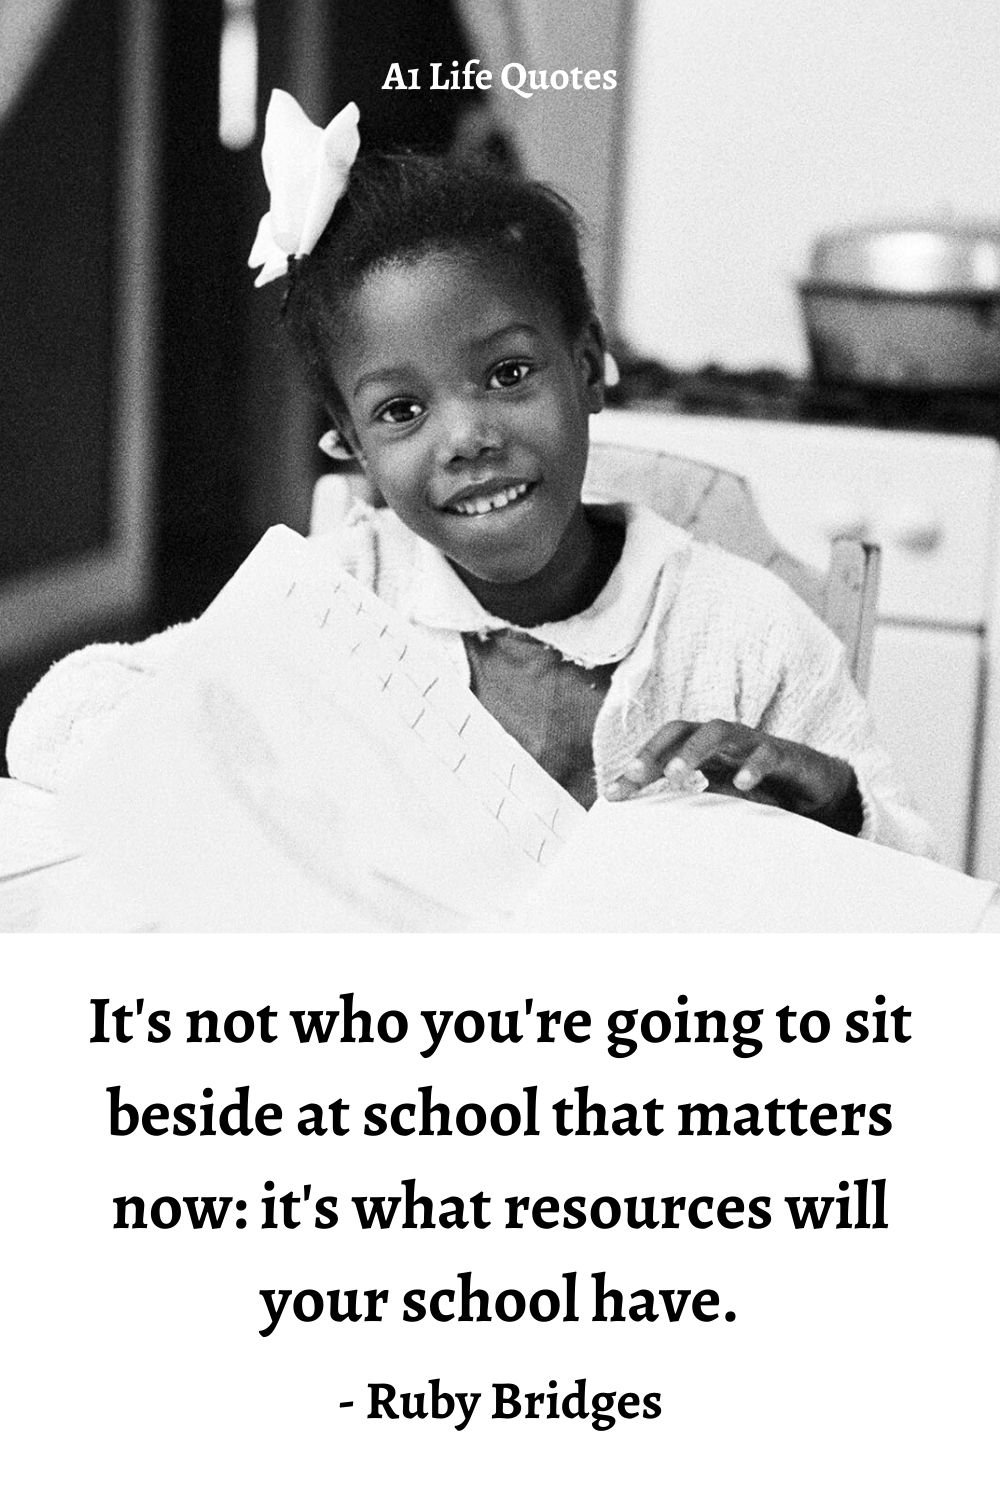 ruby bridges quotes about going to school